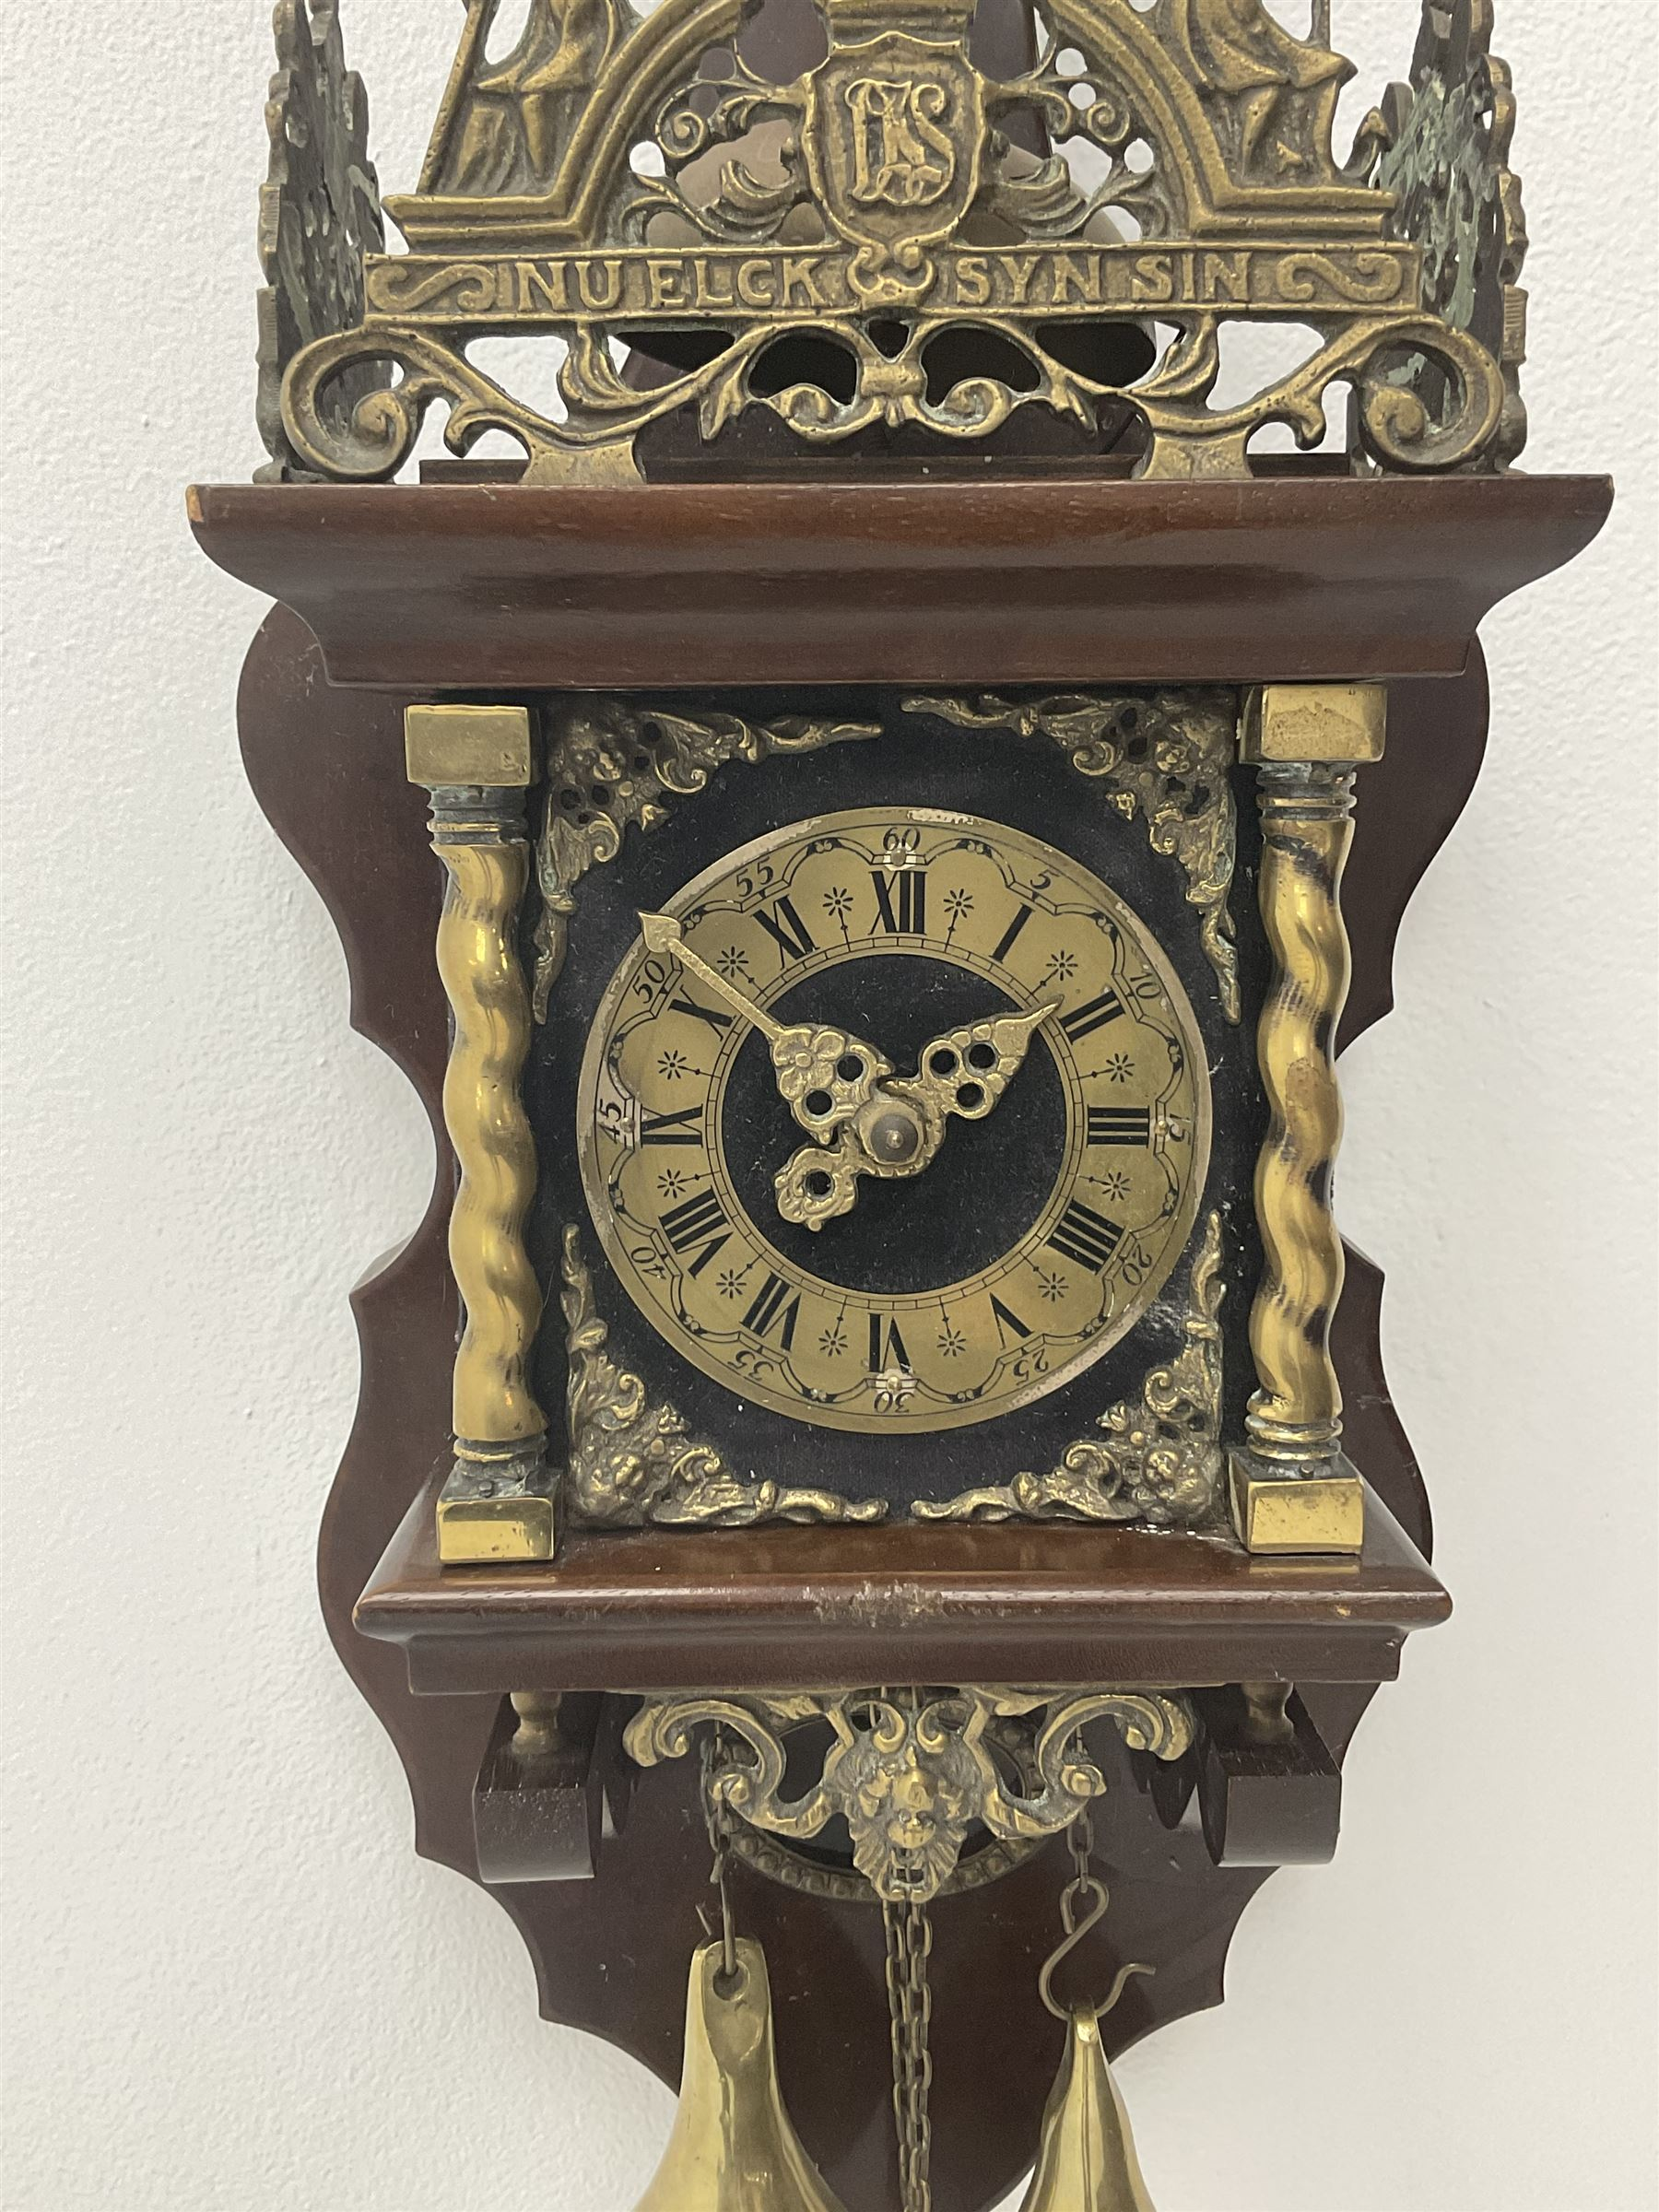 Late 20th century Dutch style figural wall clock in walnut case - Image 3 of 4